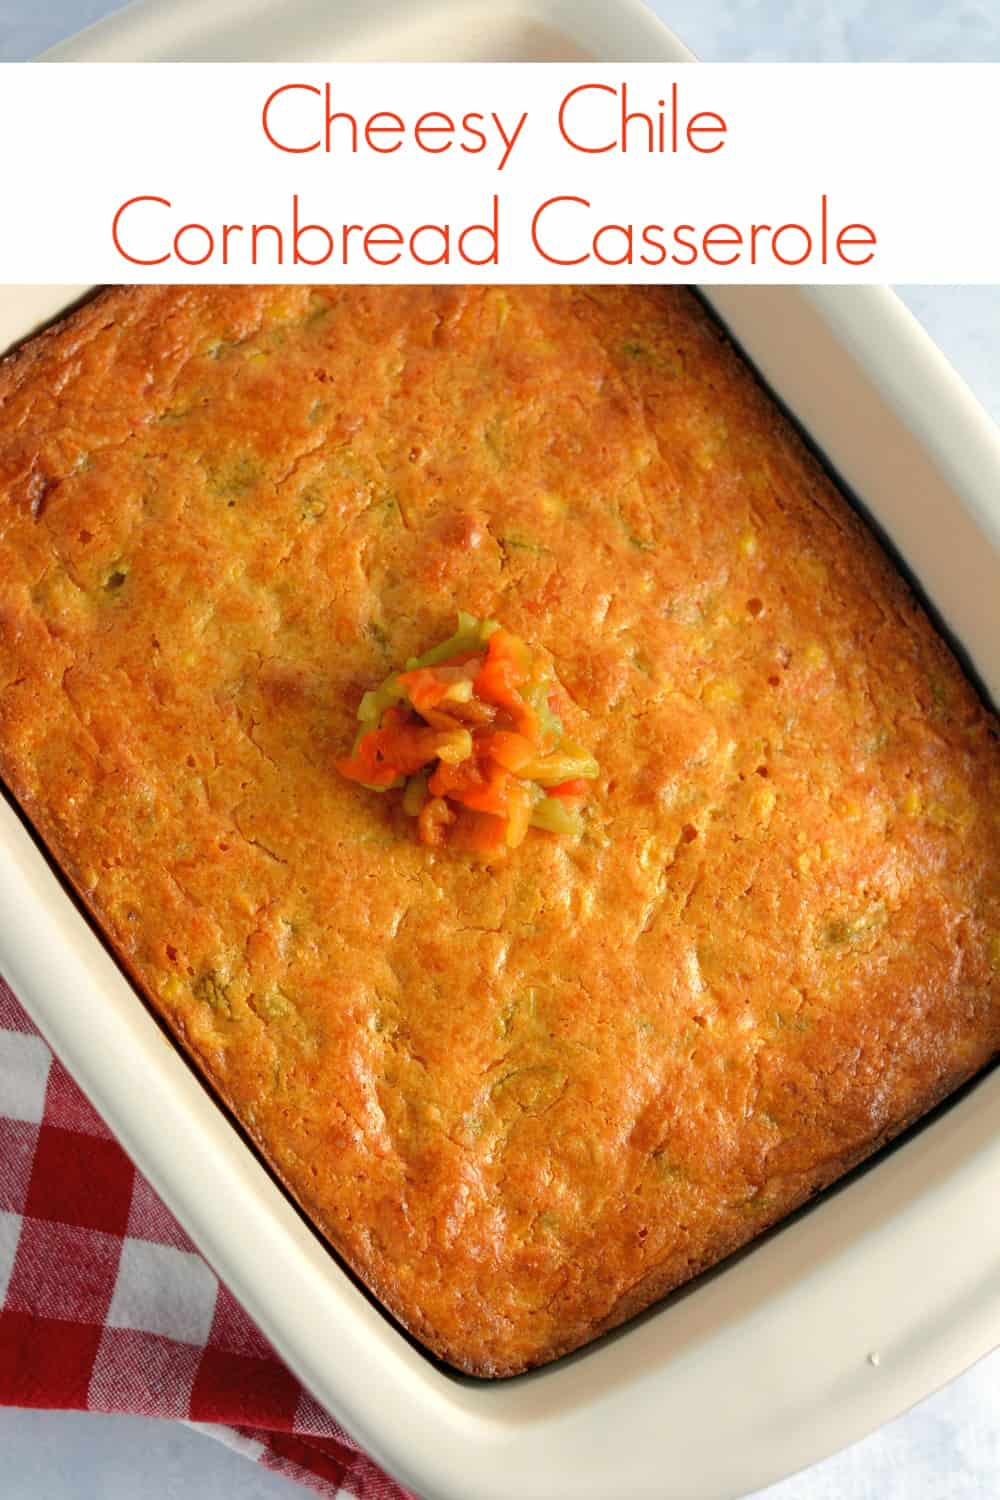 Cheesy Chile Cornbread Casserole Recipe- moist cornbread with chiles, corn and a cheese blend. Add shredded chicken or beef for a whole meal!